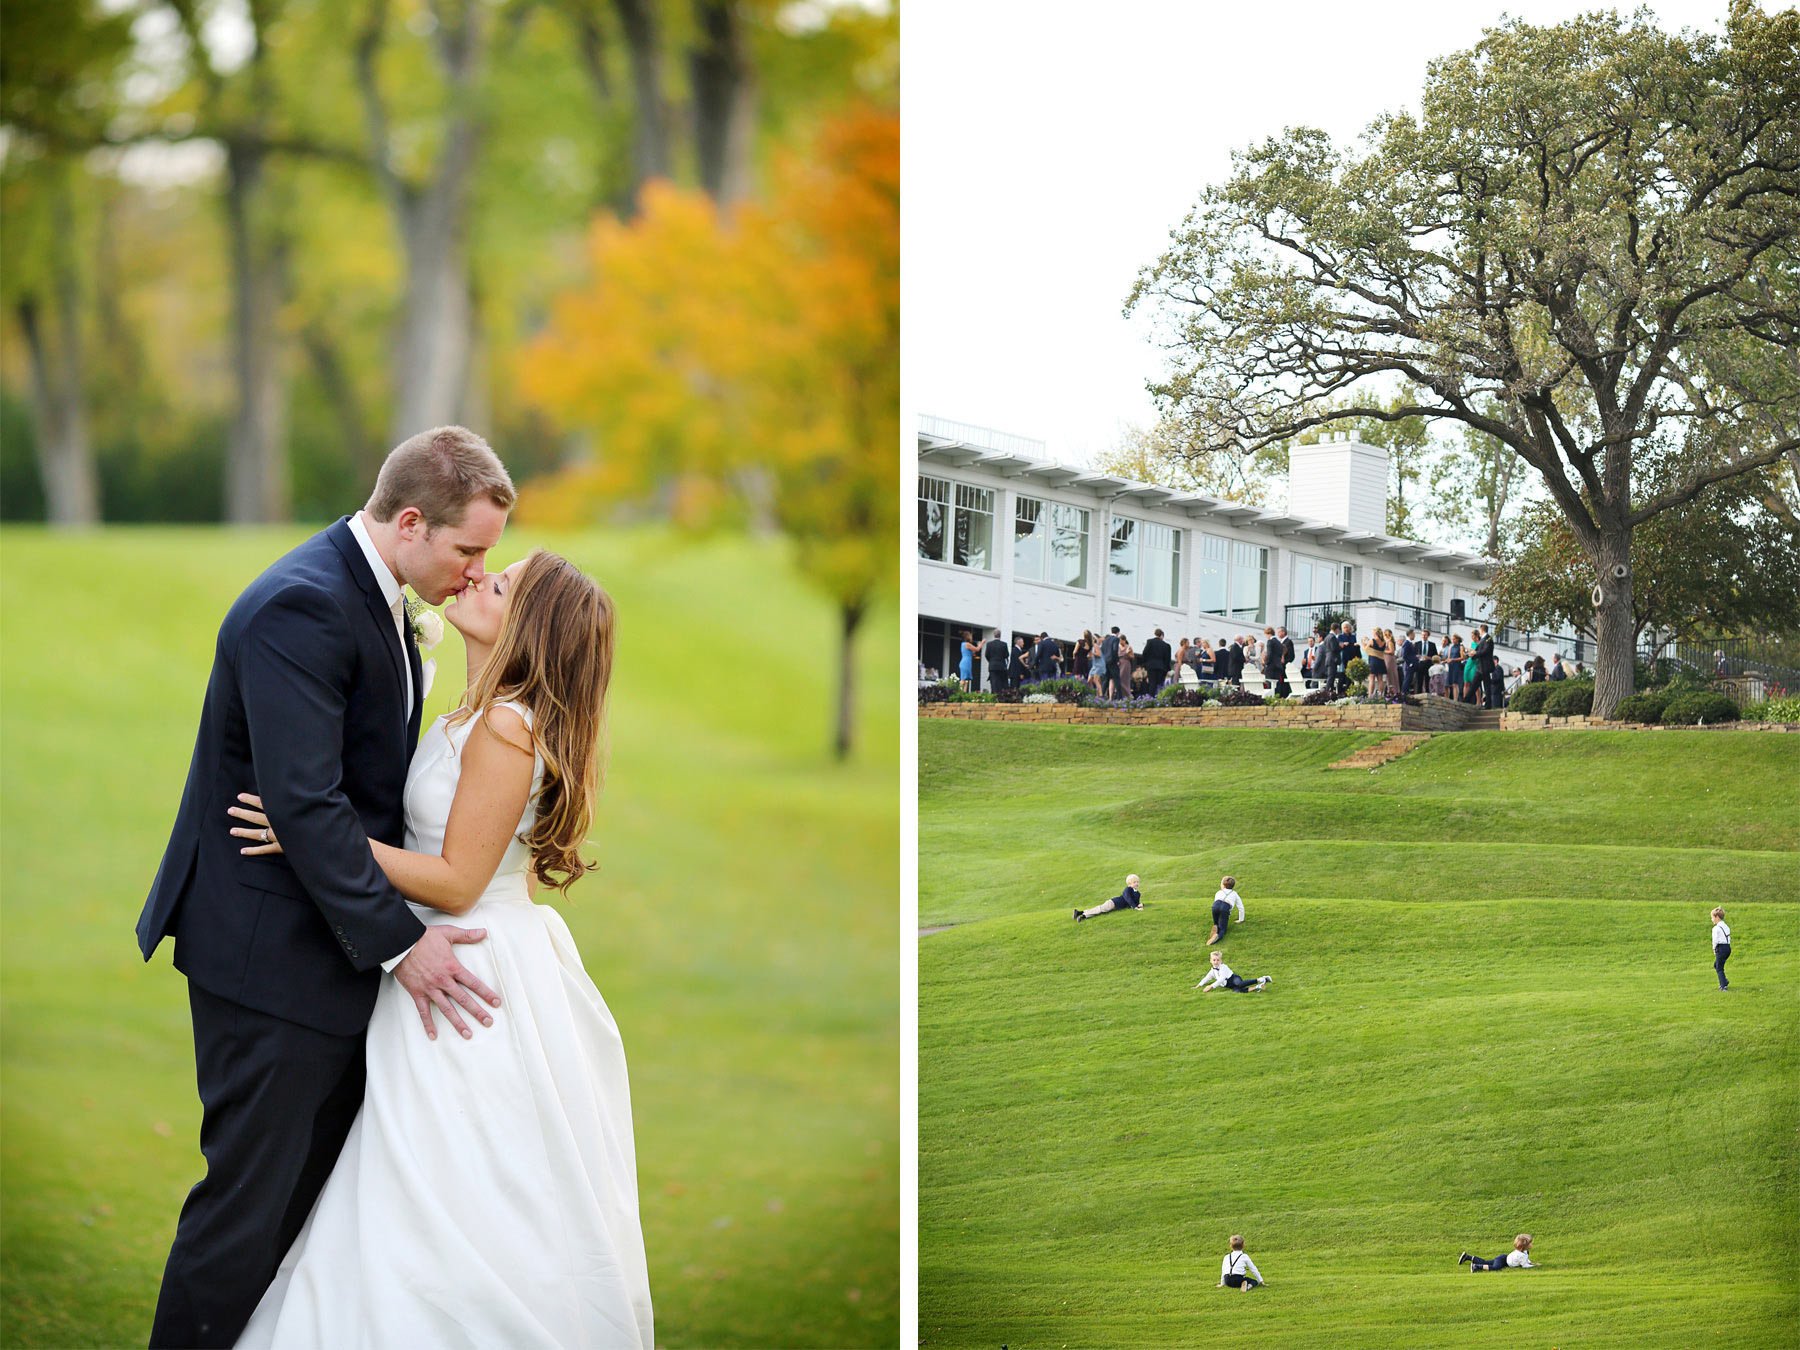 15-Minneapolis-Minnesota-Wedding-Photography-by-Vick-Photography-Woodhill-Country-Club-Golf-Course-Autumn-Fall-Colors-Elle-and-Tyler.jpg